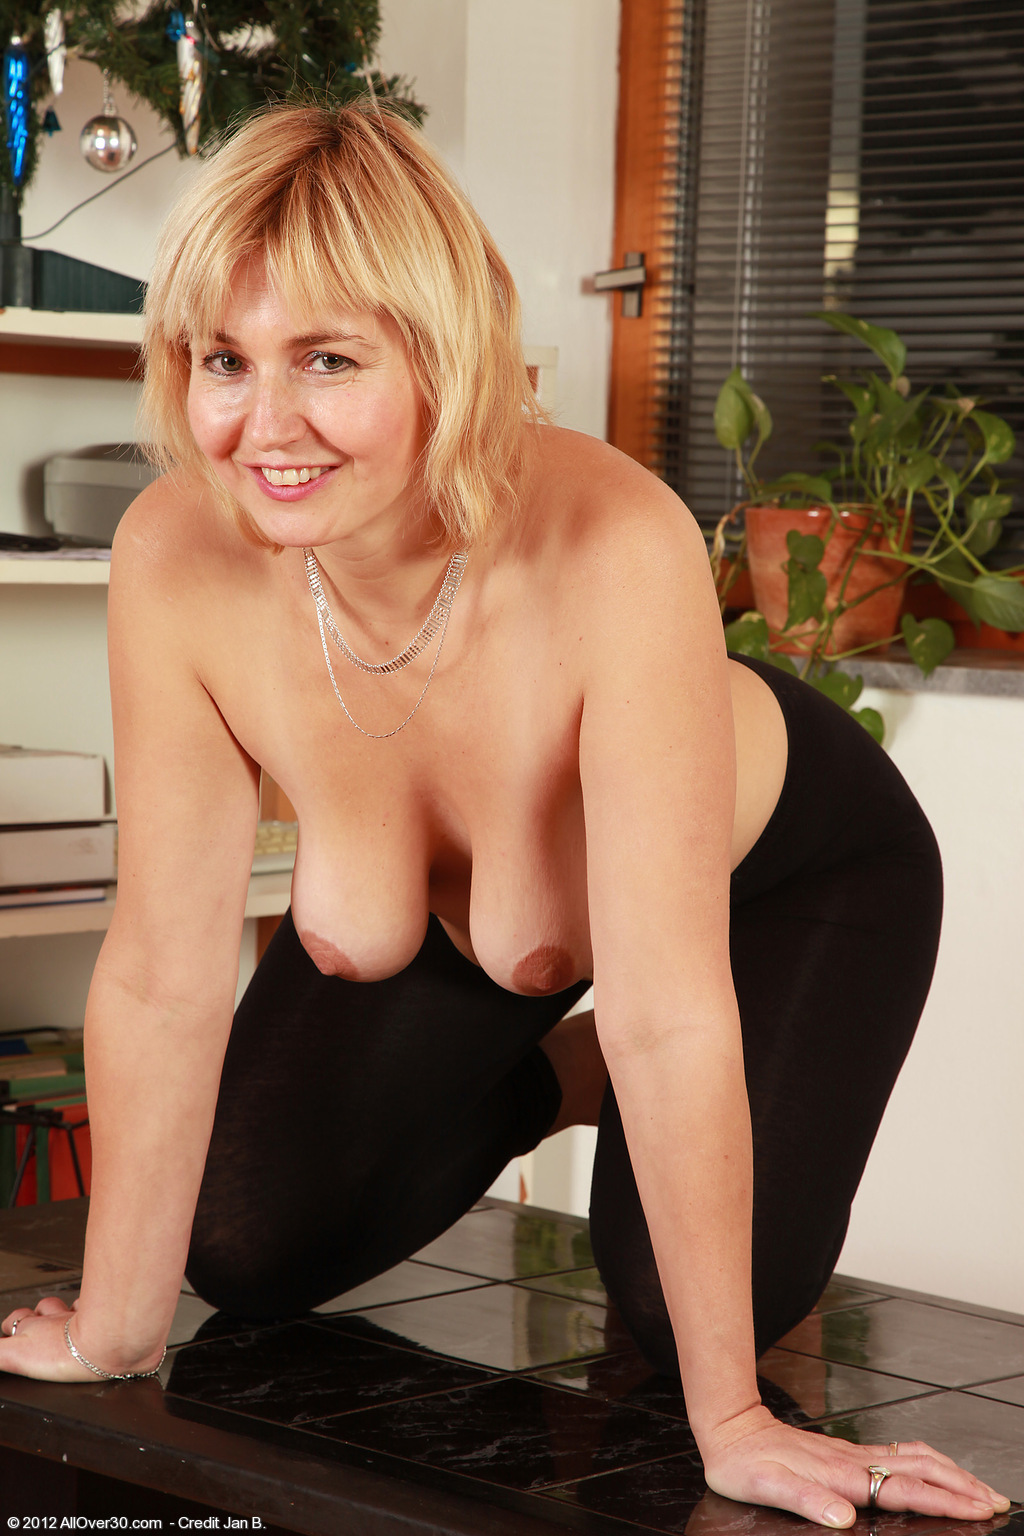 Free milf pic galleries apologise